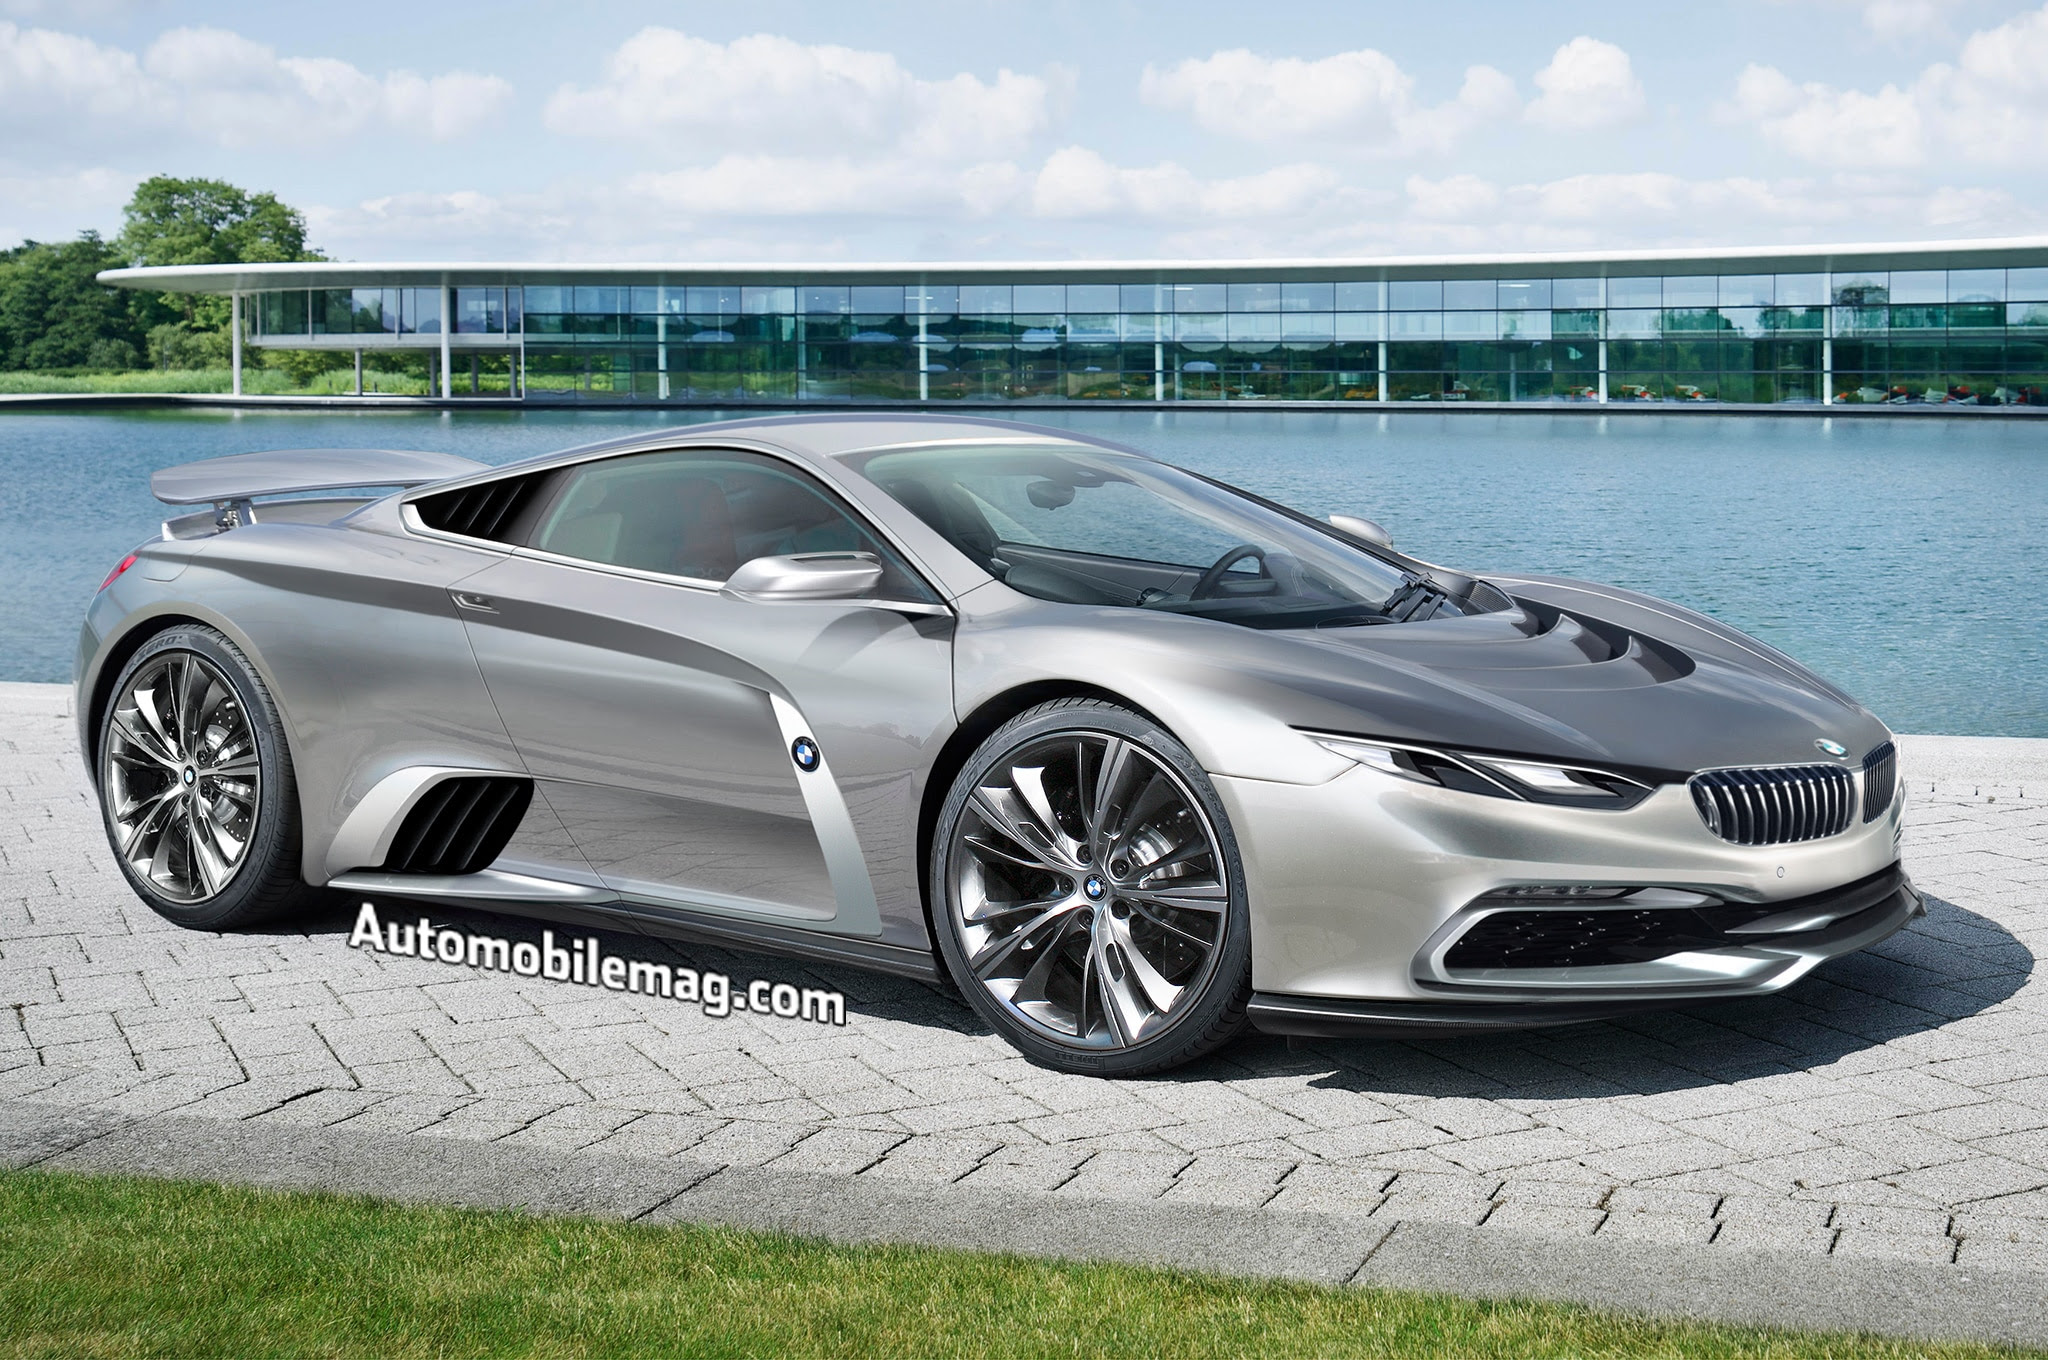 A BMW and McLaren Supercar? Maybe. BMW and Lexus? Humbug.